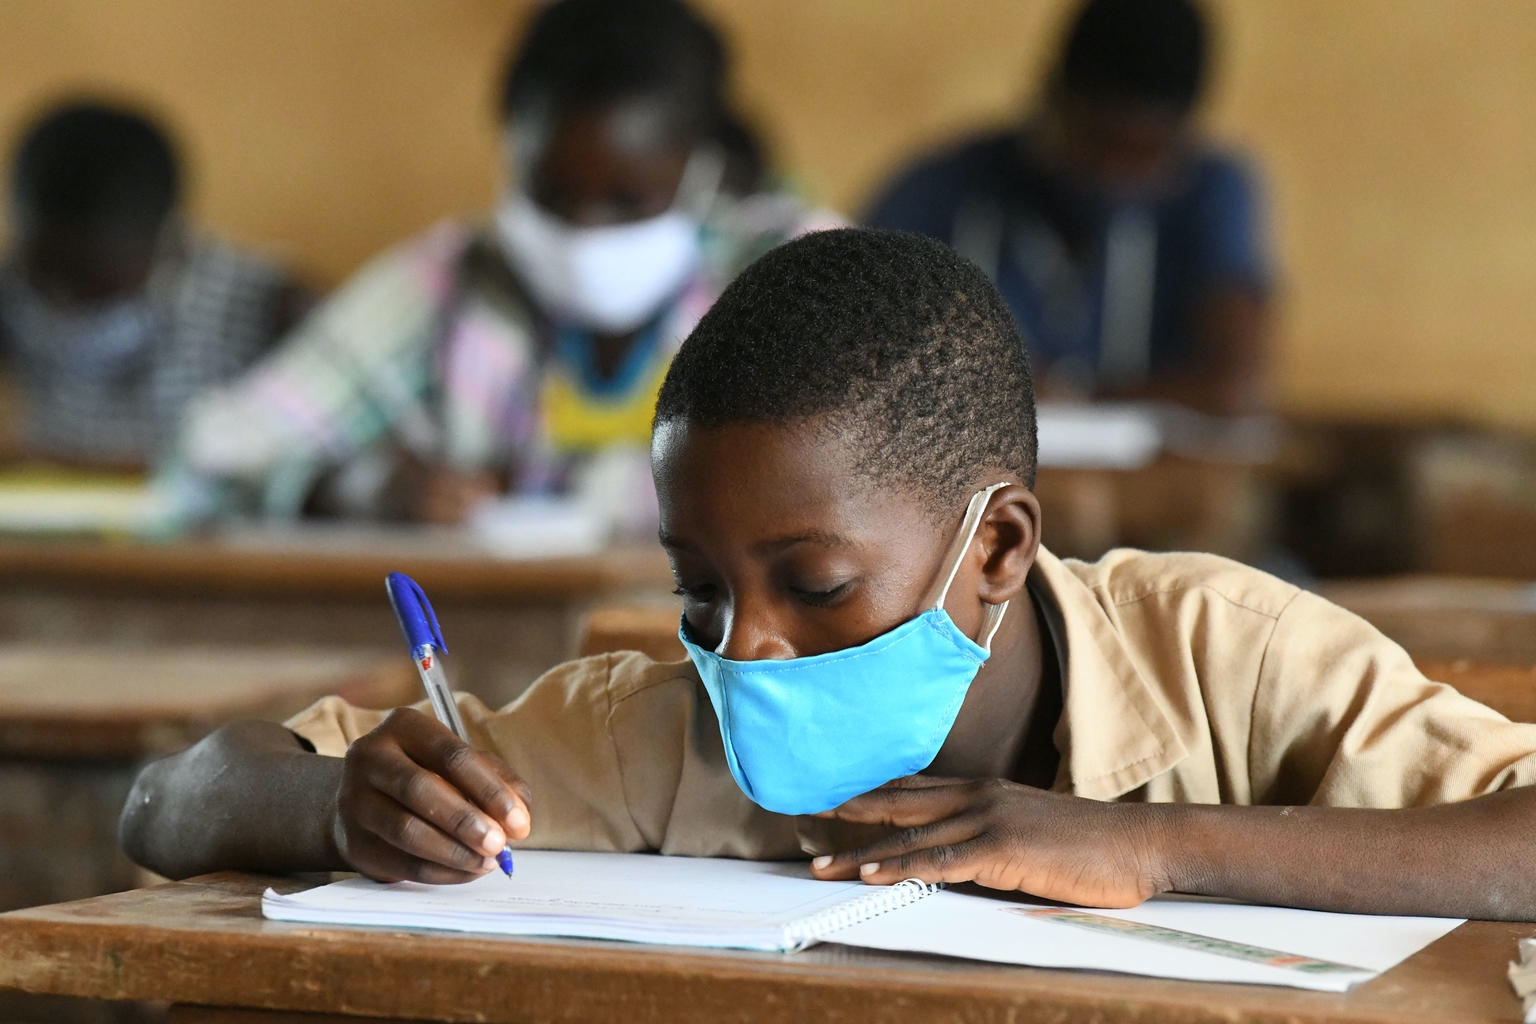 Students attending classes at the Primary school of San Pedro, in the South West of Côte d'Ivoire.   Due to COVID-19, the schools were closed for several weeks. Today classes started, with the necessary measures. Children wear masks, wash their hands regularly and keep a social distance.  For every child, education.